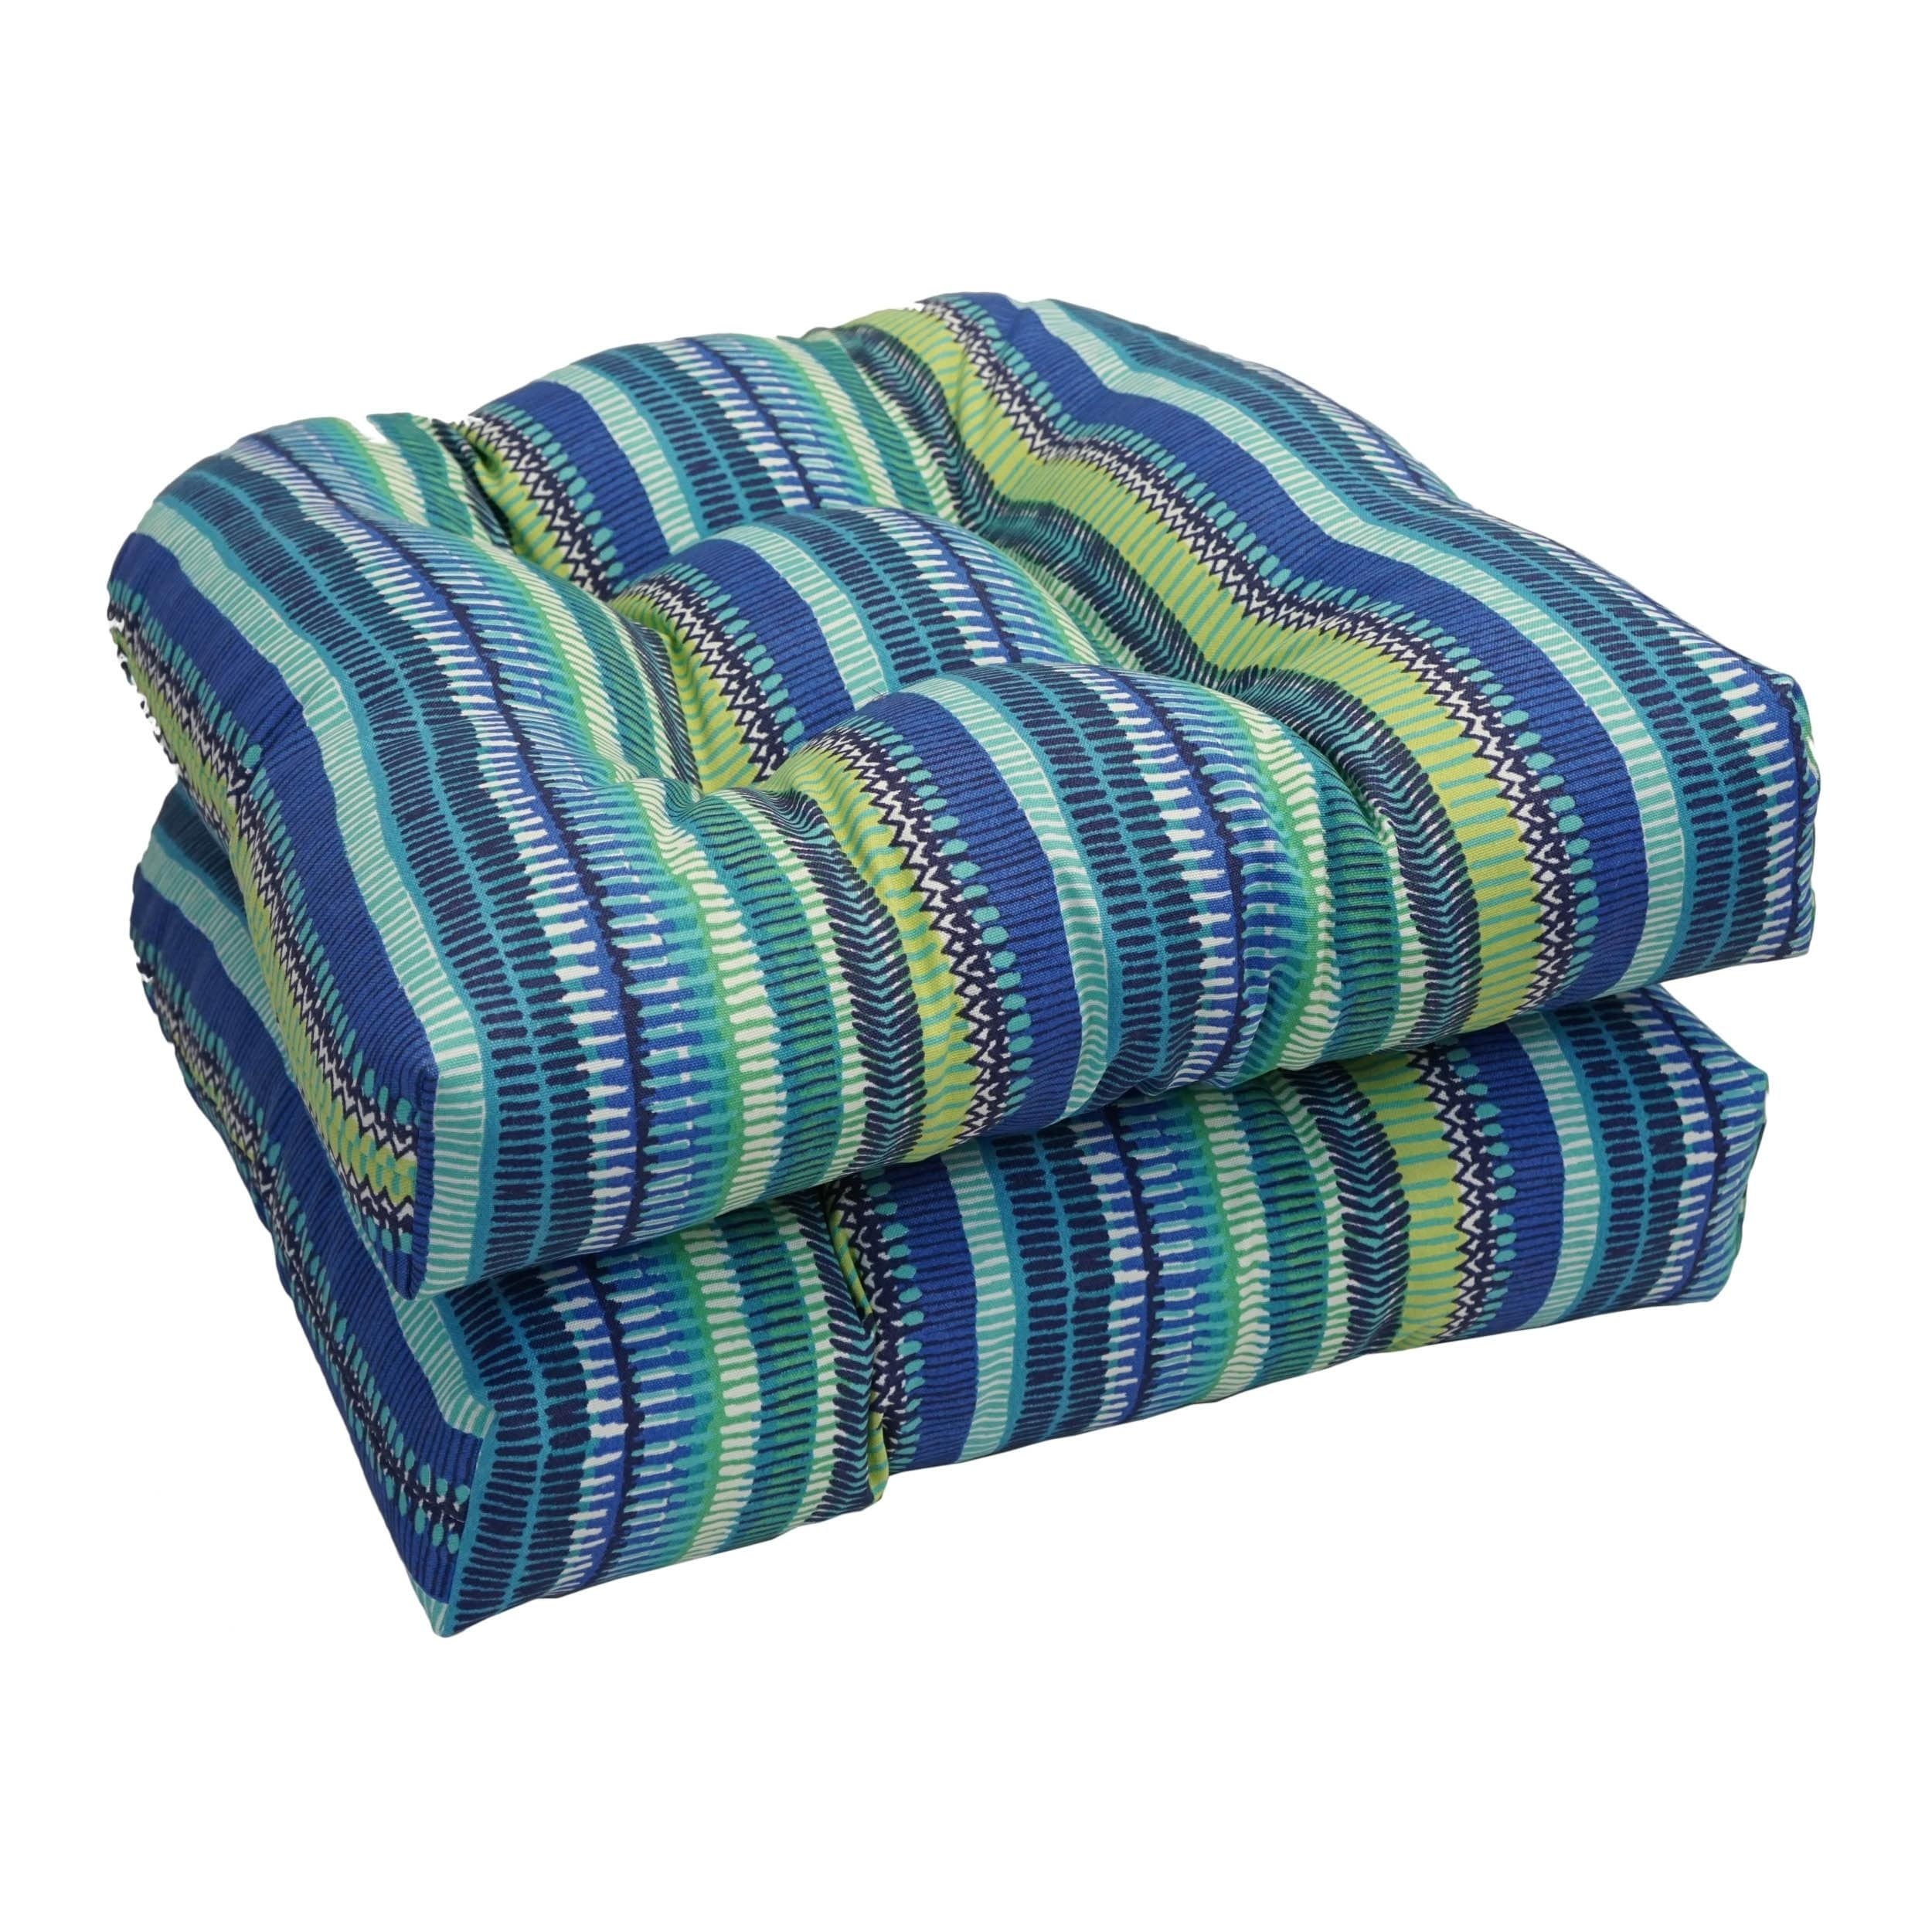 Buy Round Outdoor Cushions & Pillows Online at Overstock.com | Our ...